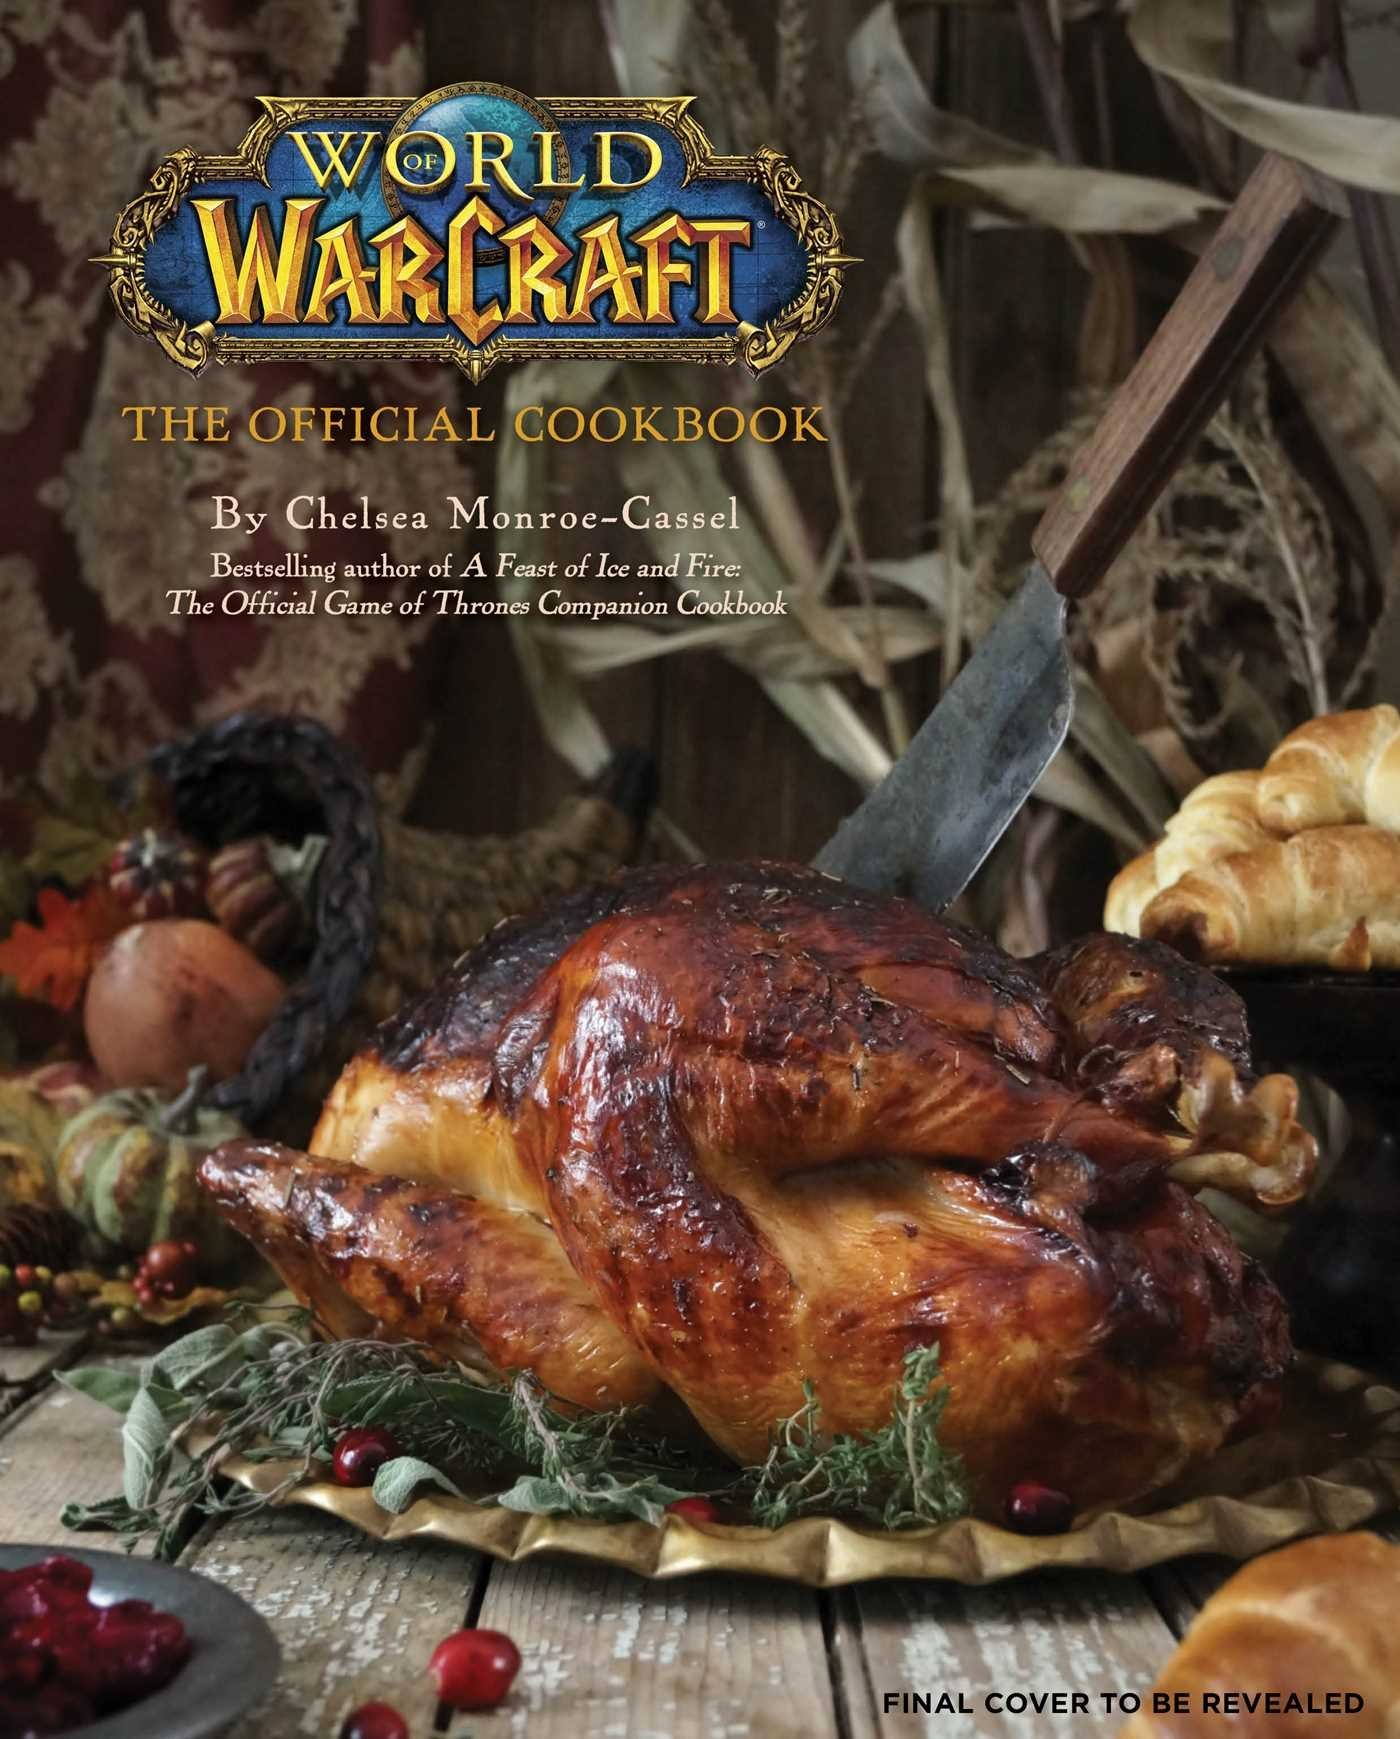 world of warcraft official cookbook cover